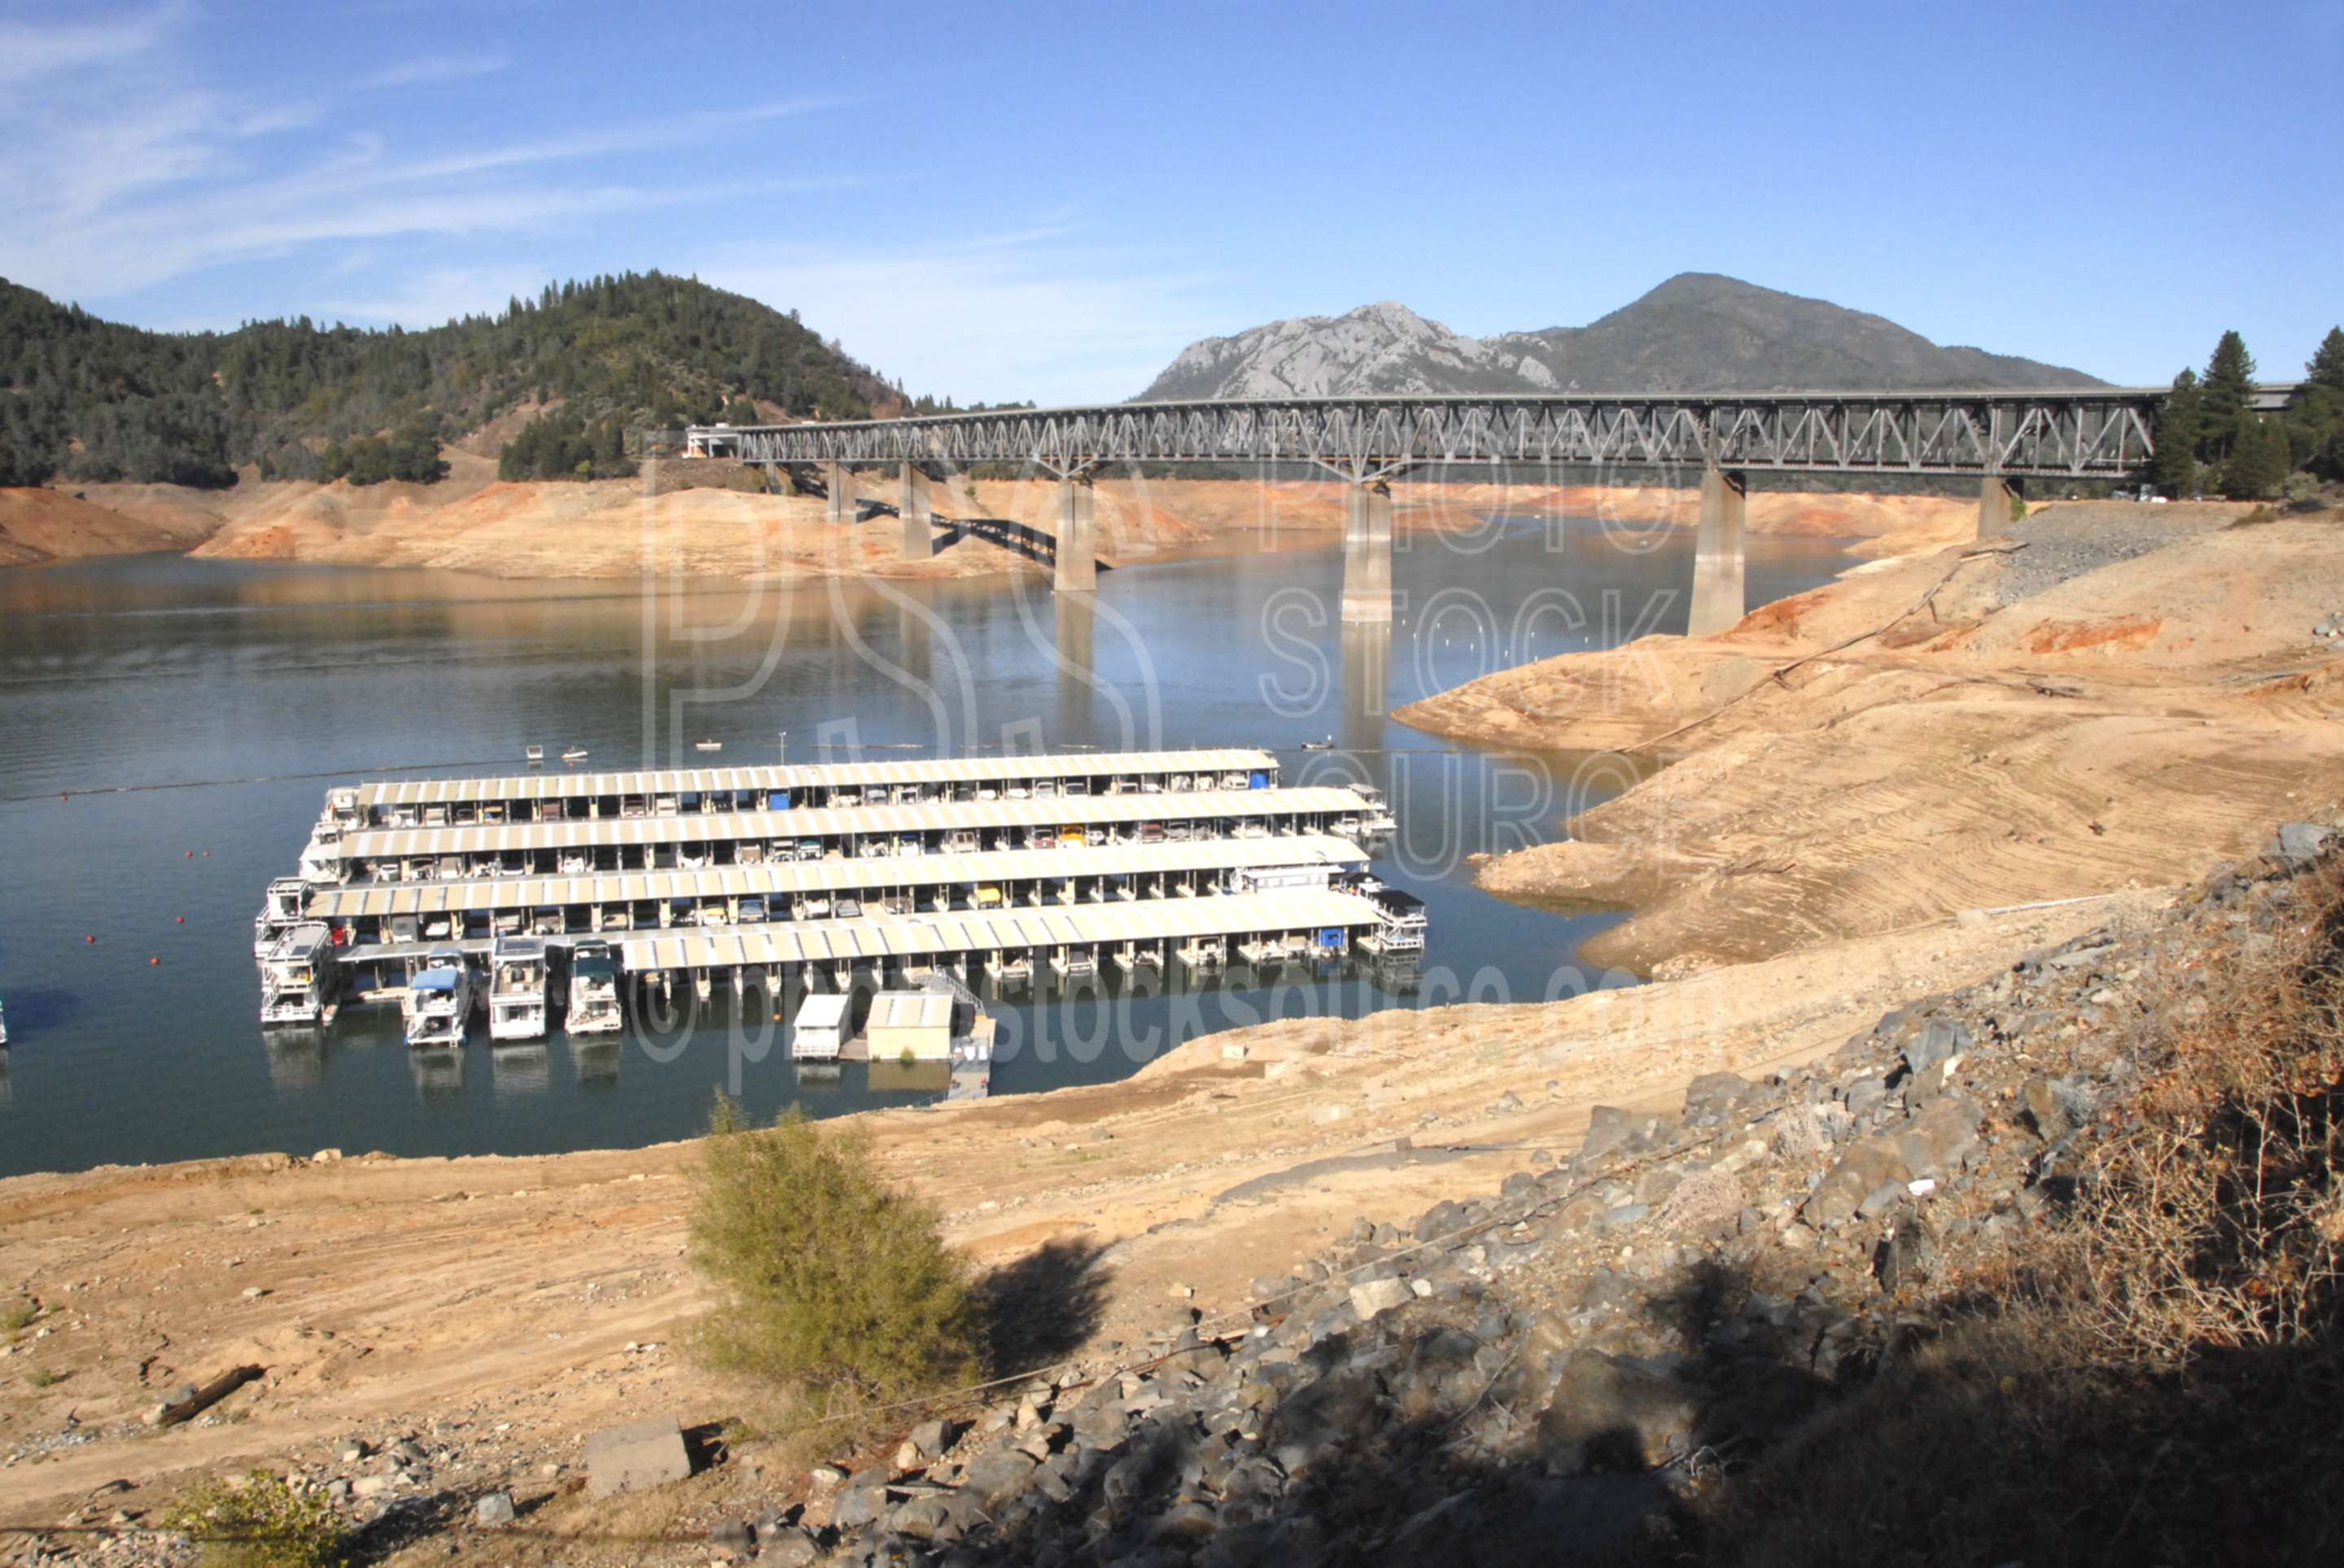 Shasta Lake,lake,house boats,docks,bridge,nature,bridges